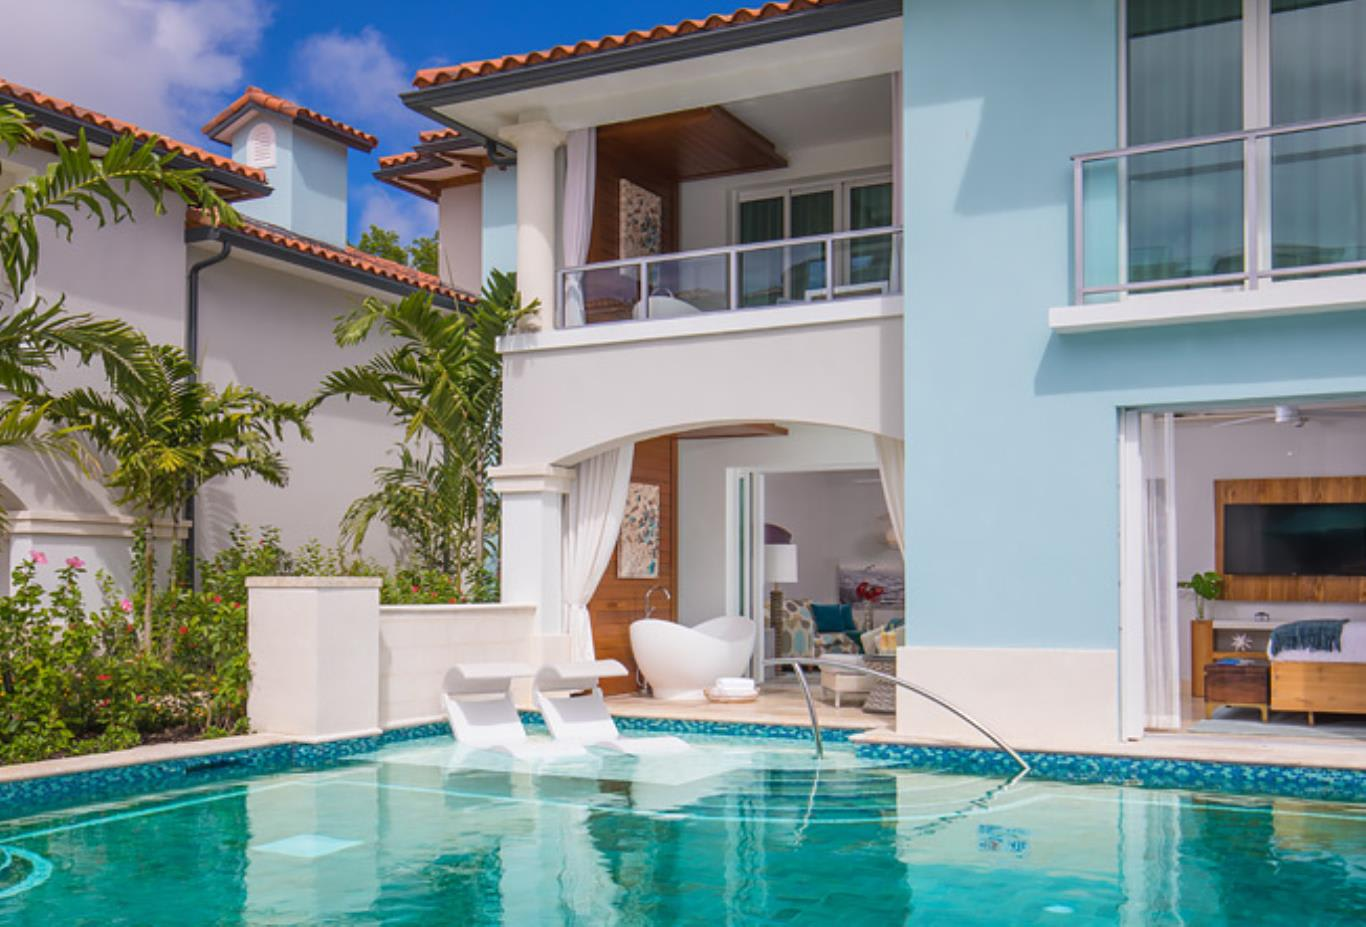 SM1B Millionaire Crystal Lagoon Swim Up Butler One Bedroom Suite with Patio Tranquillity Soaking exterior